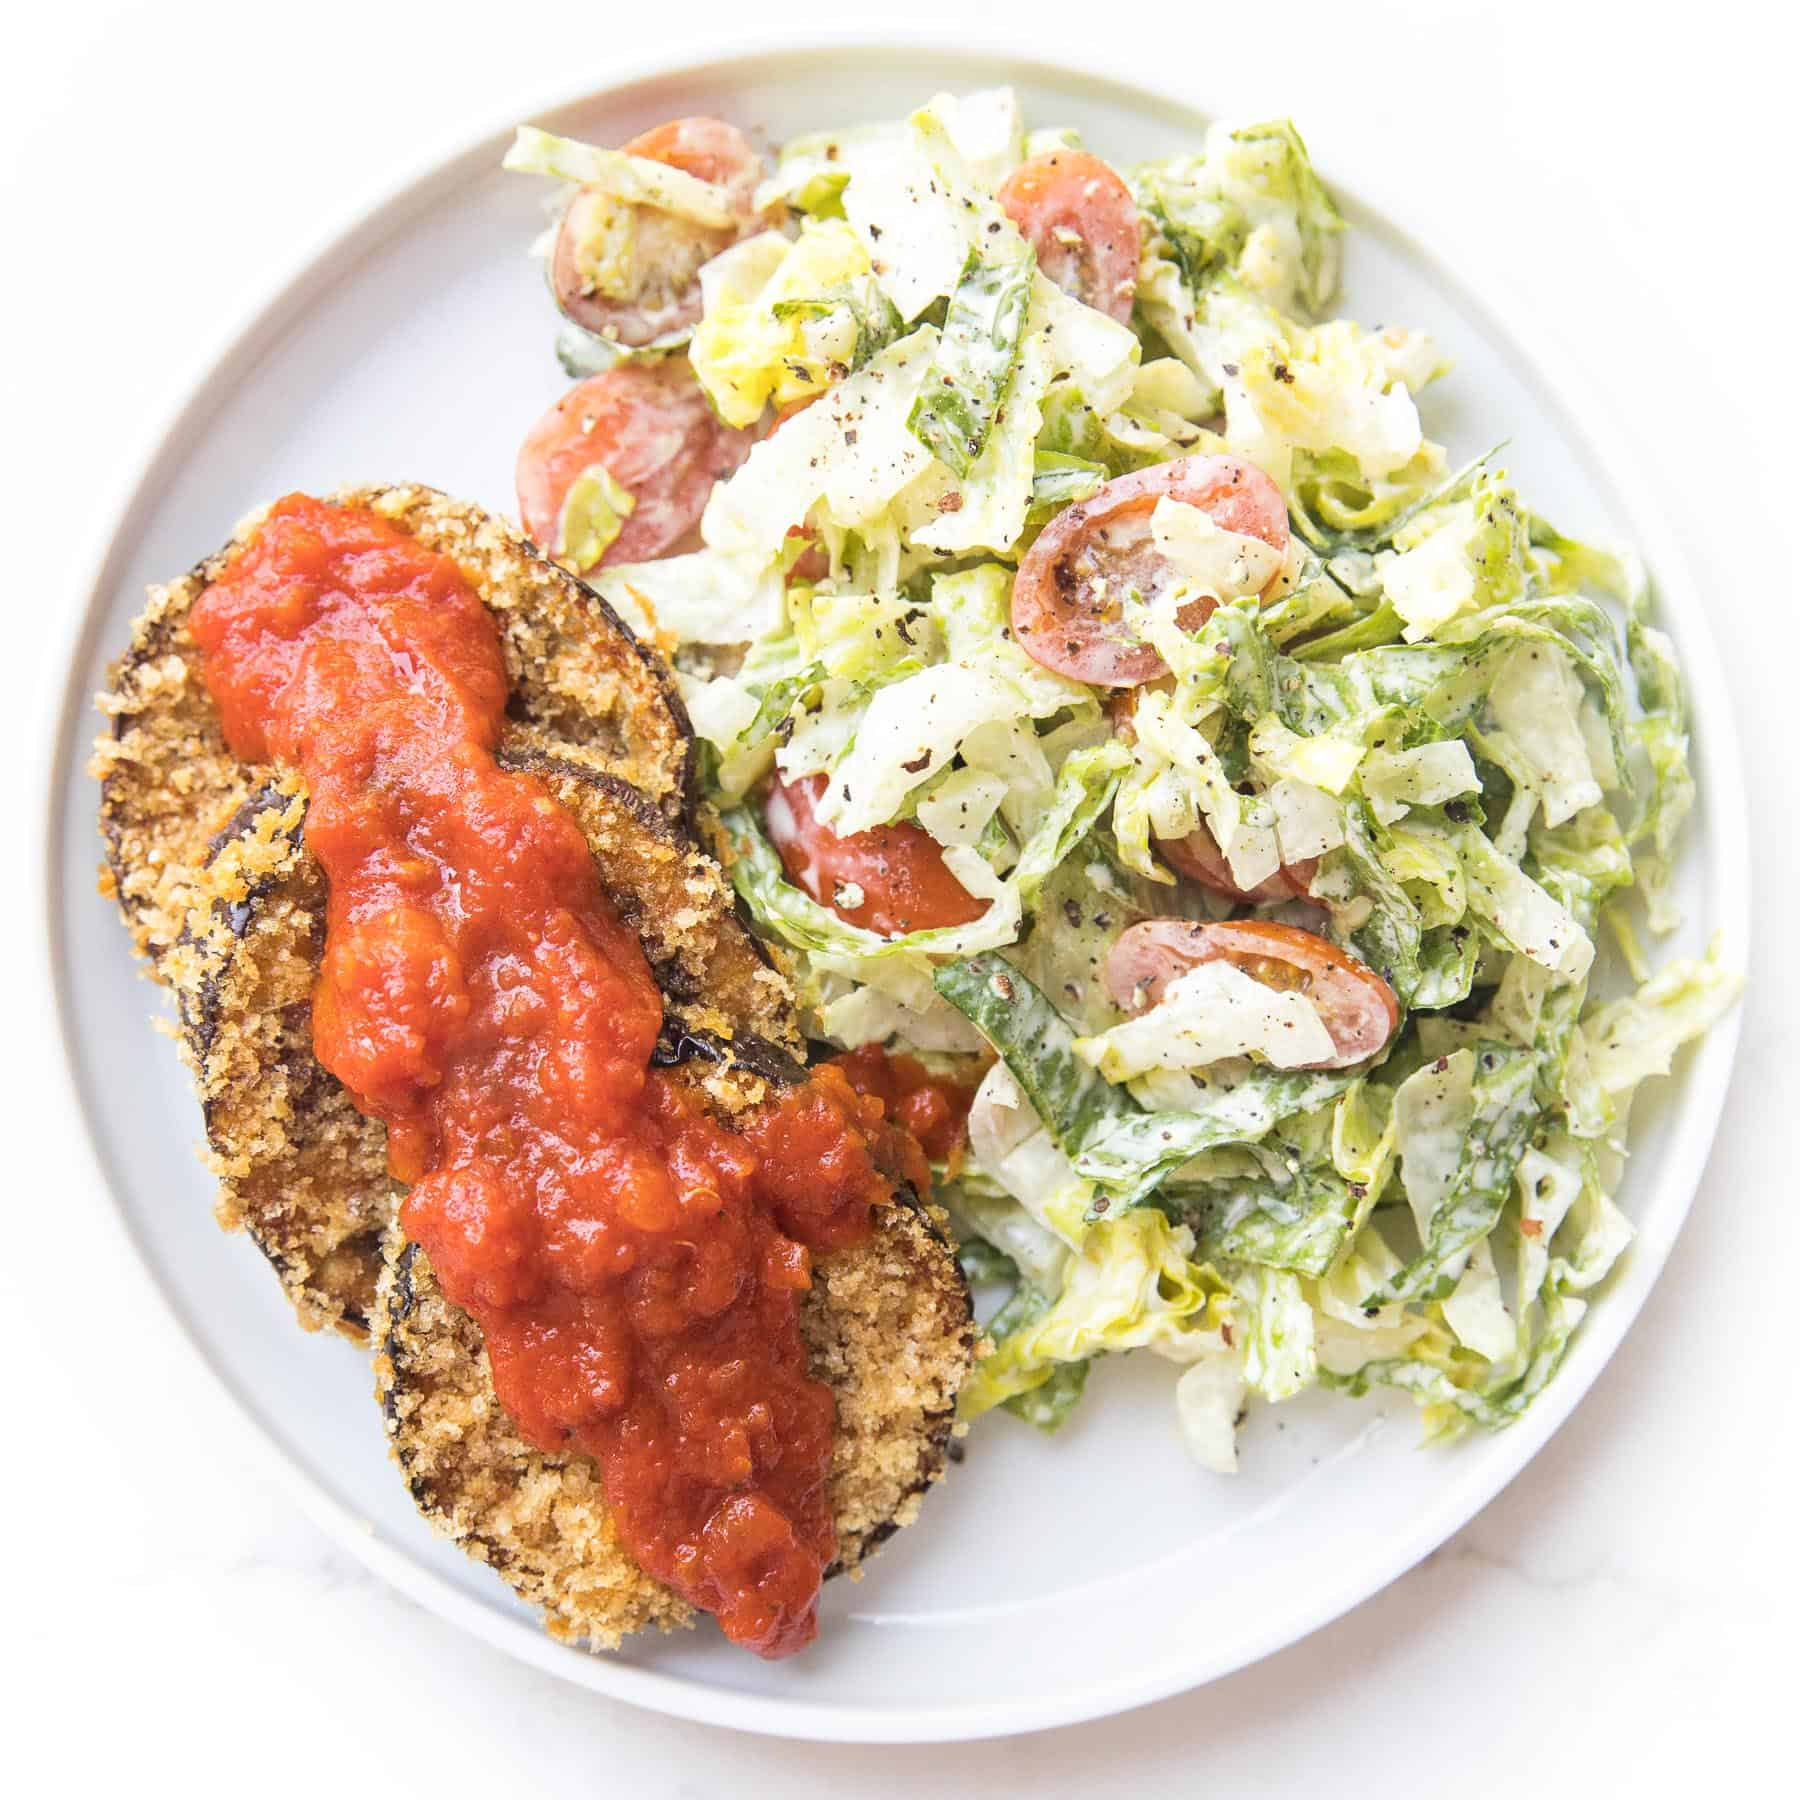 crispy coated eggplant next to caesar salad on a white plate